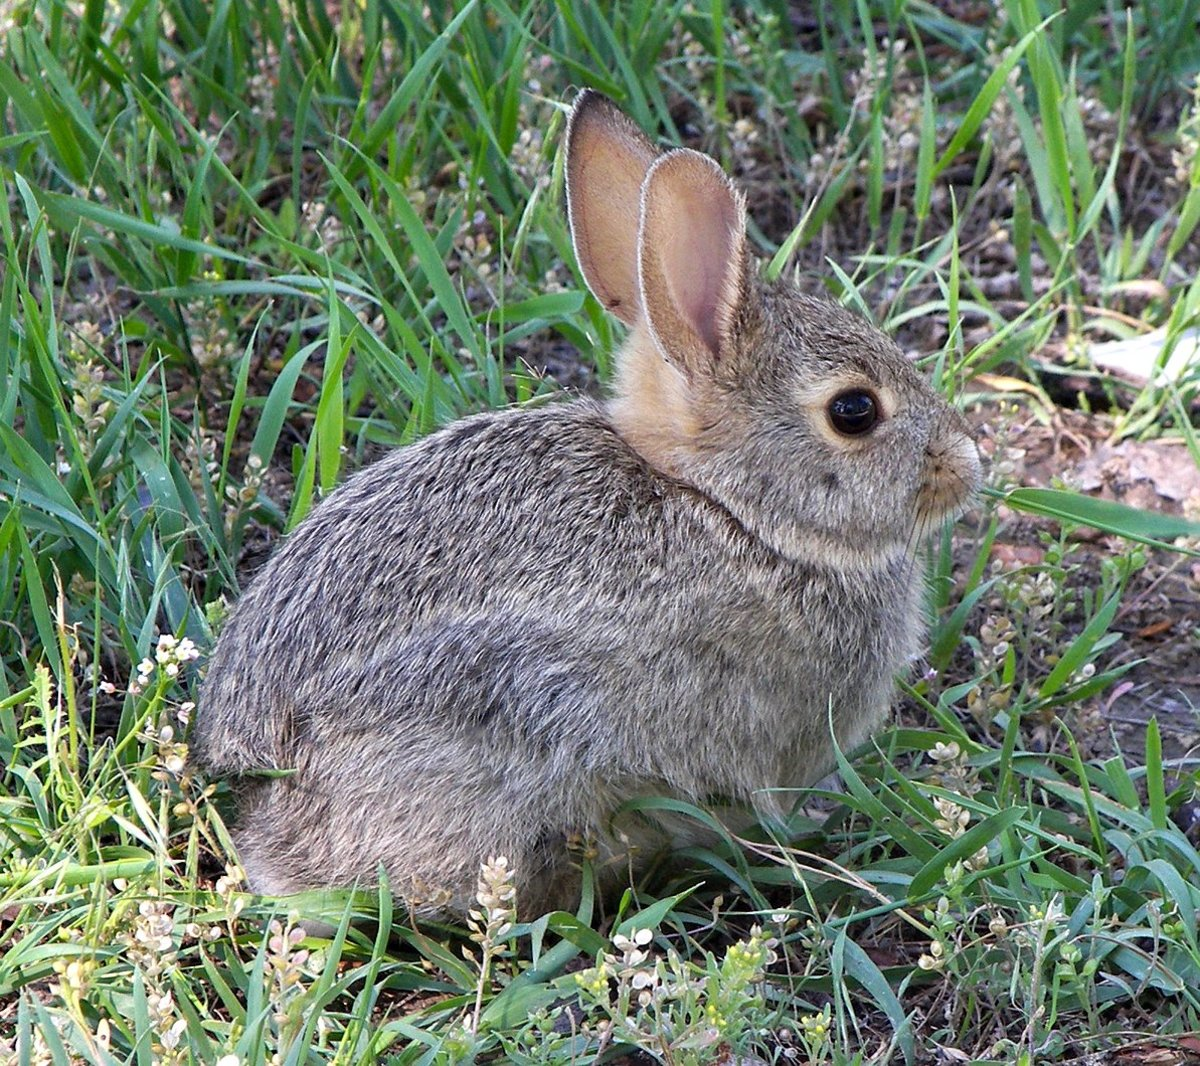 rabbit in montana - How To Keep Rabbits Out Of Garden